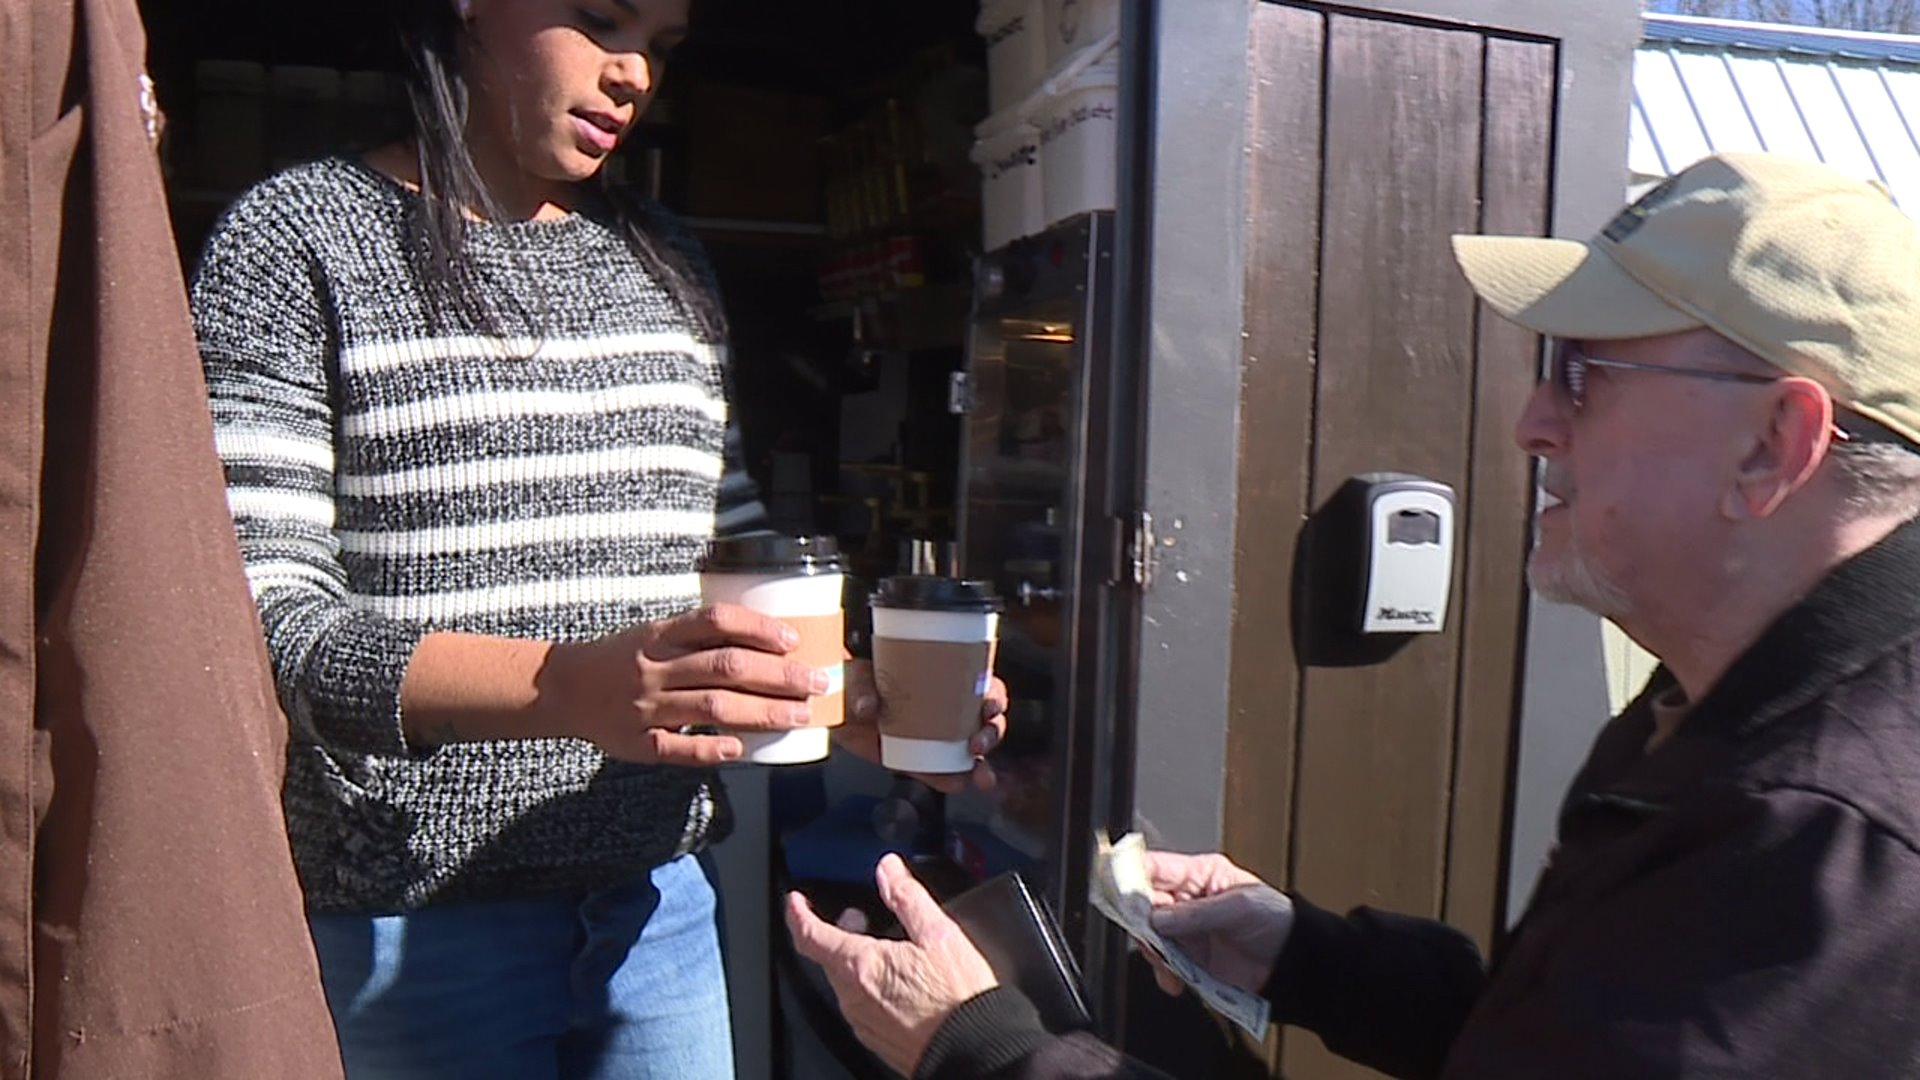 Davidson County woman provides pick-me-up for community with her mobile coffee bar